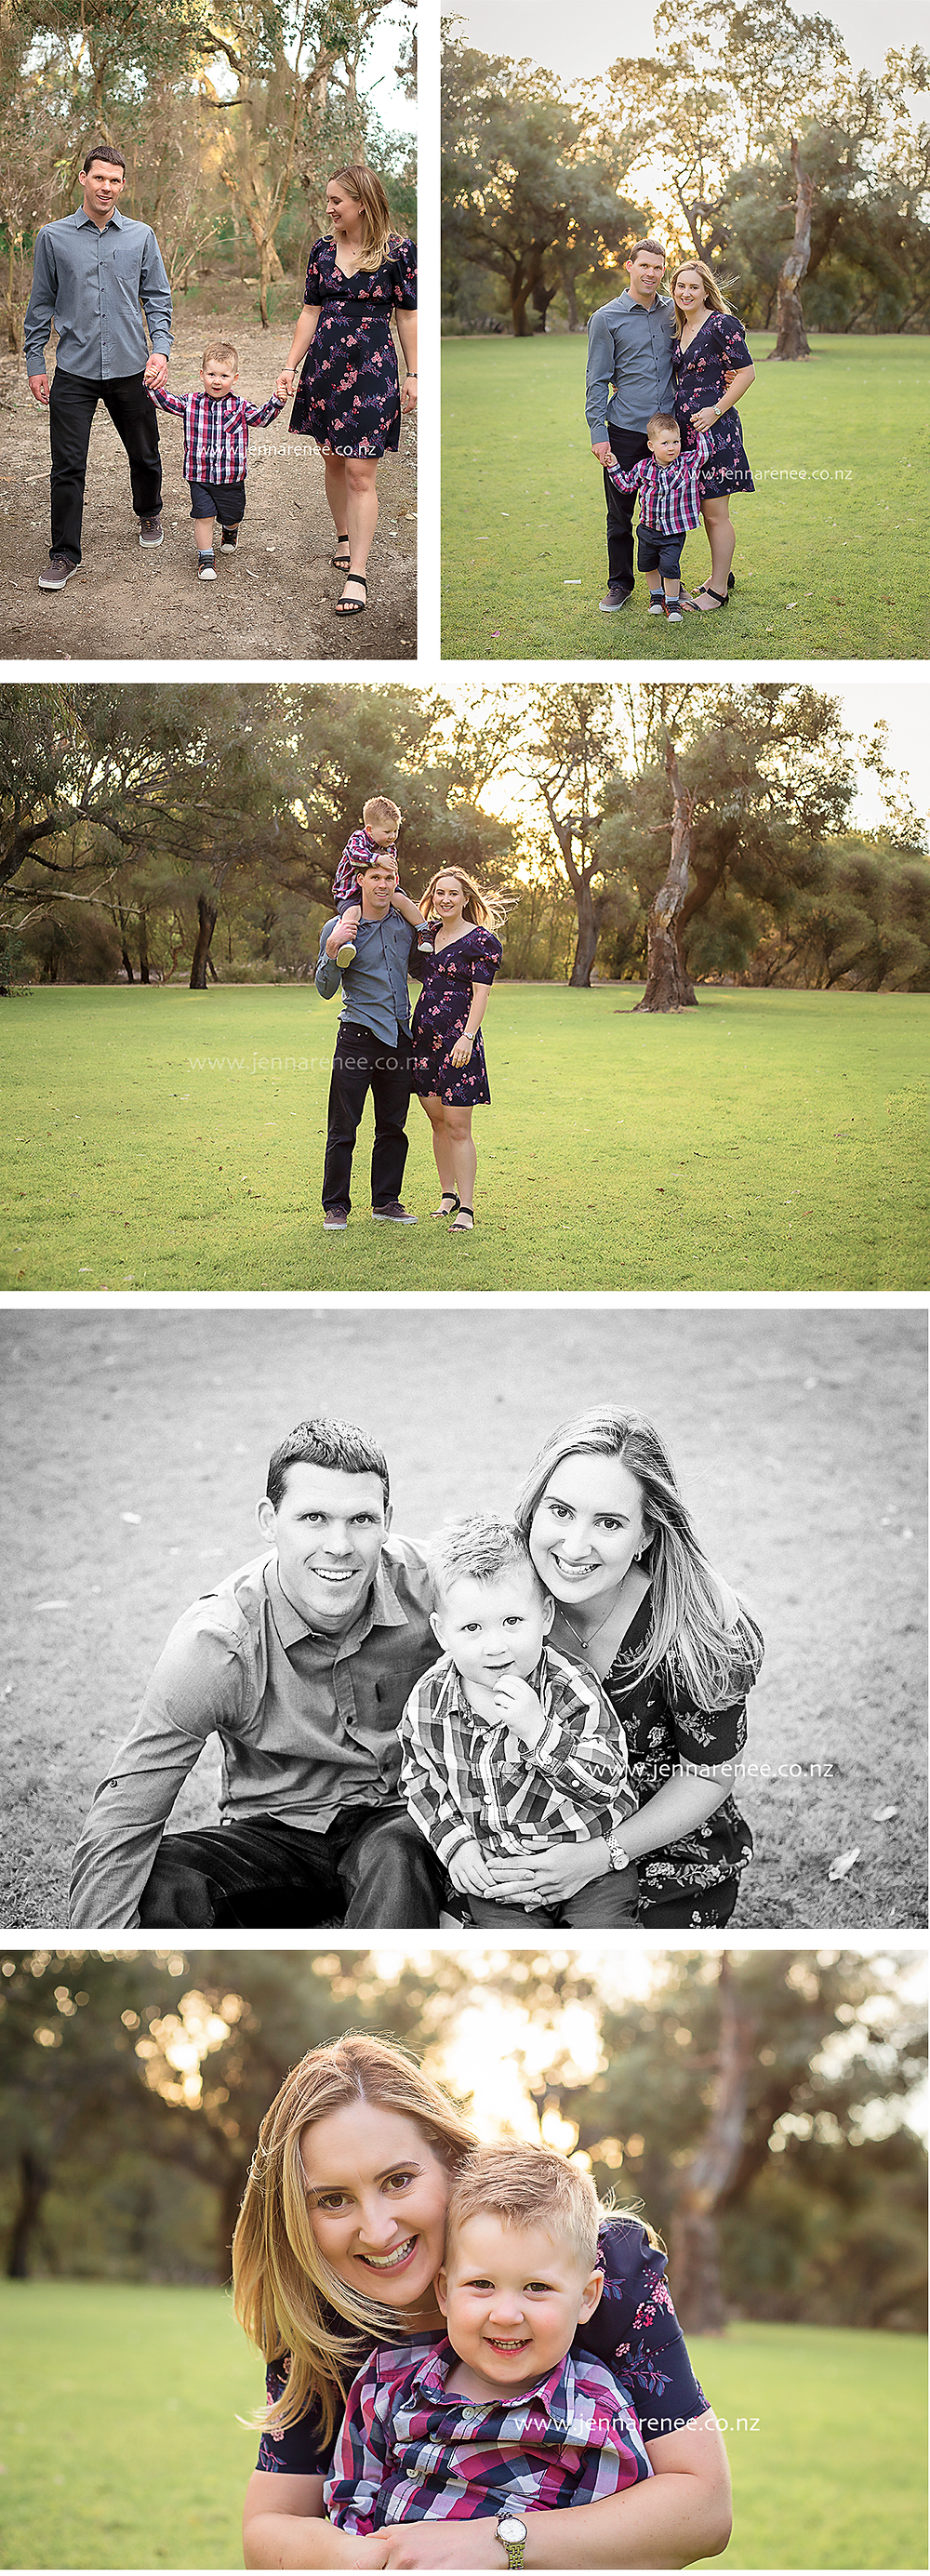 Outdoor family portrait session